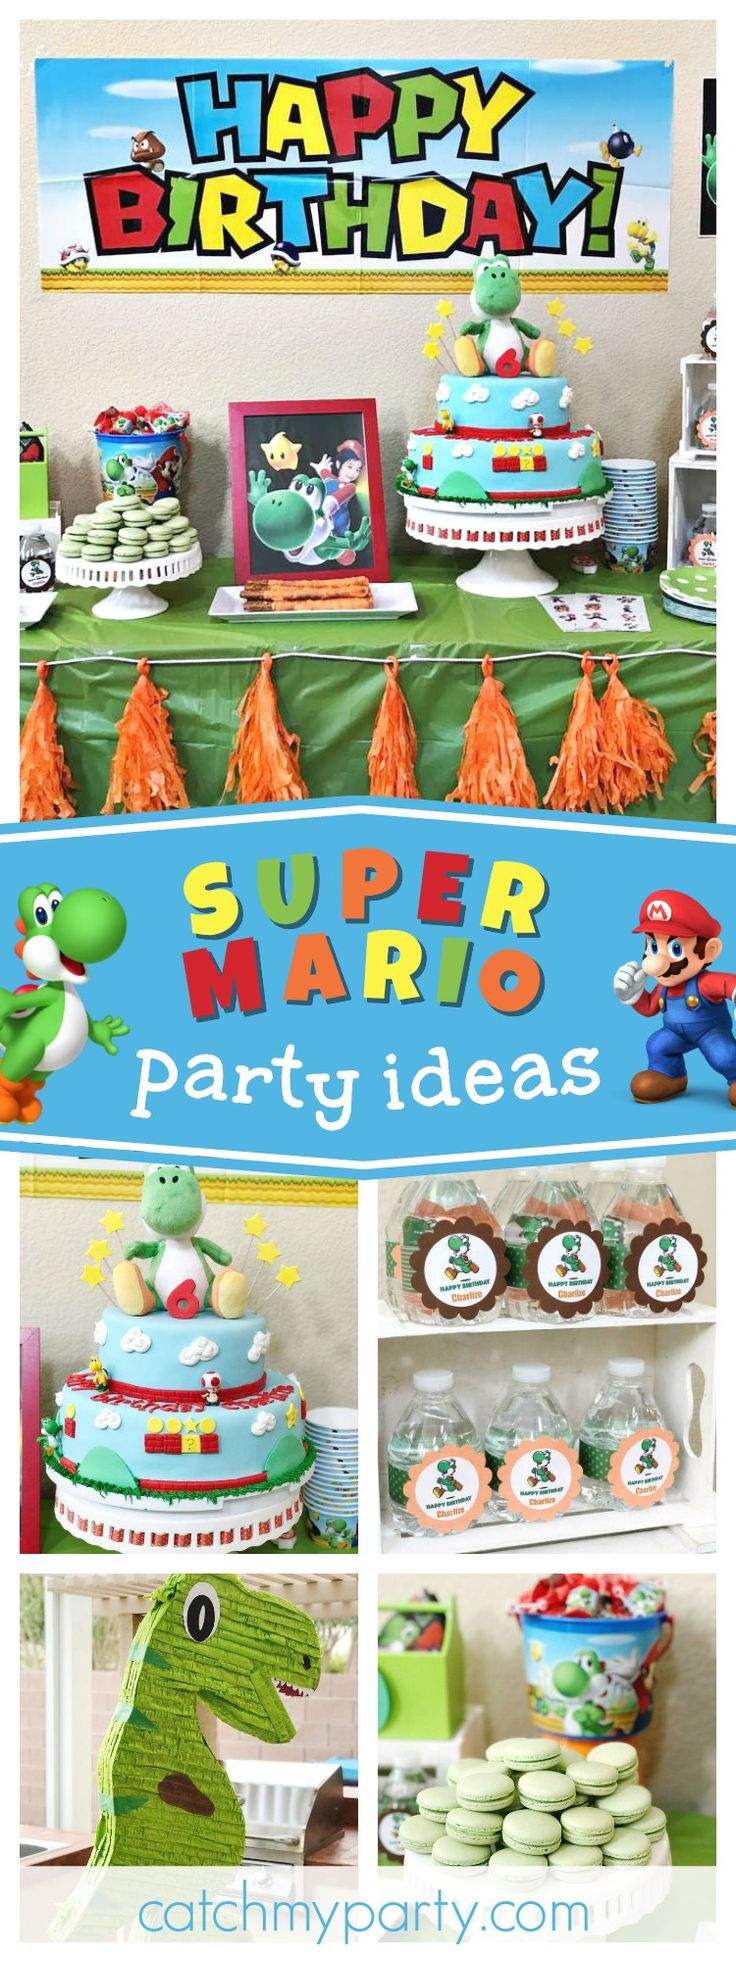 Check out this awesome Super Mario birthday party The birthday cake is so much fun